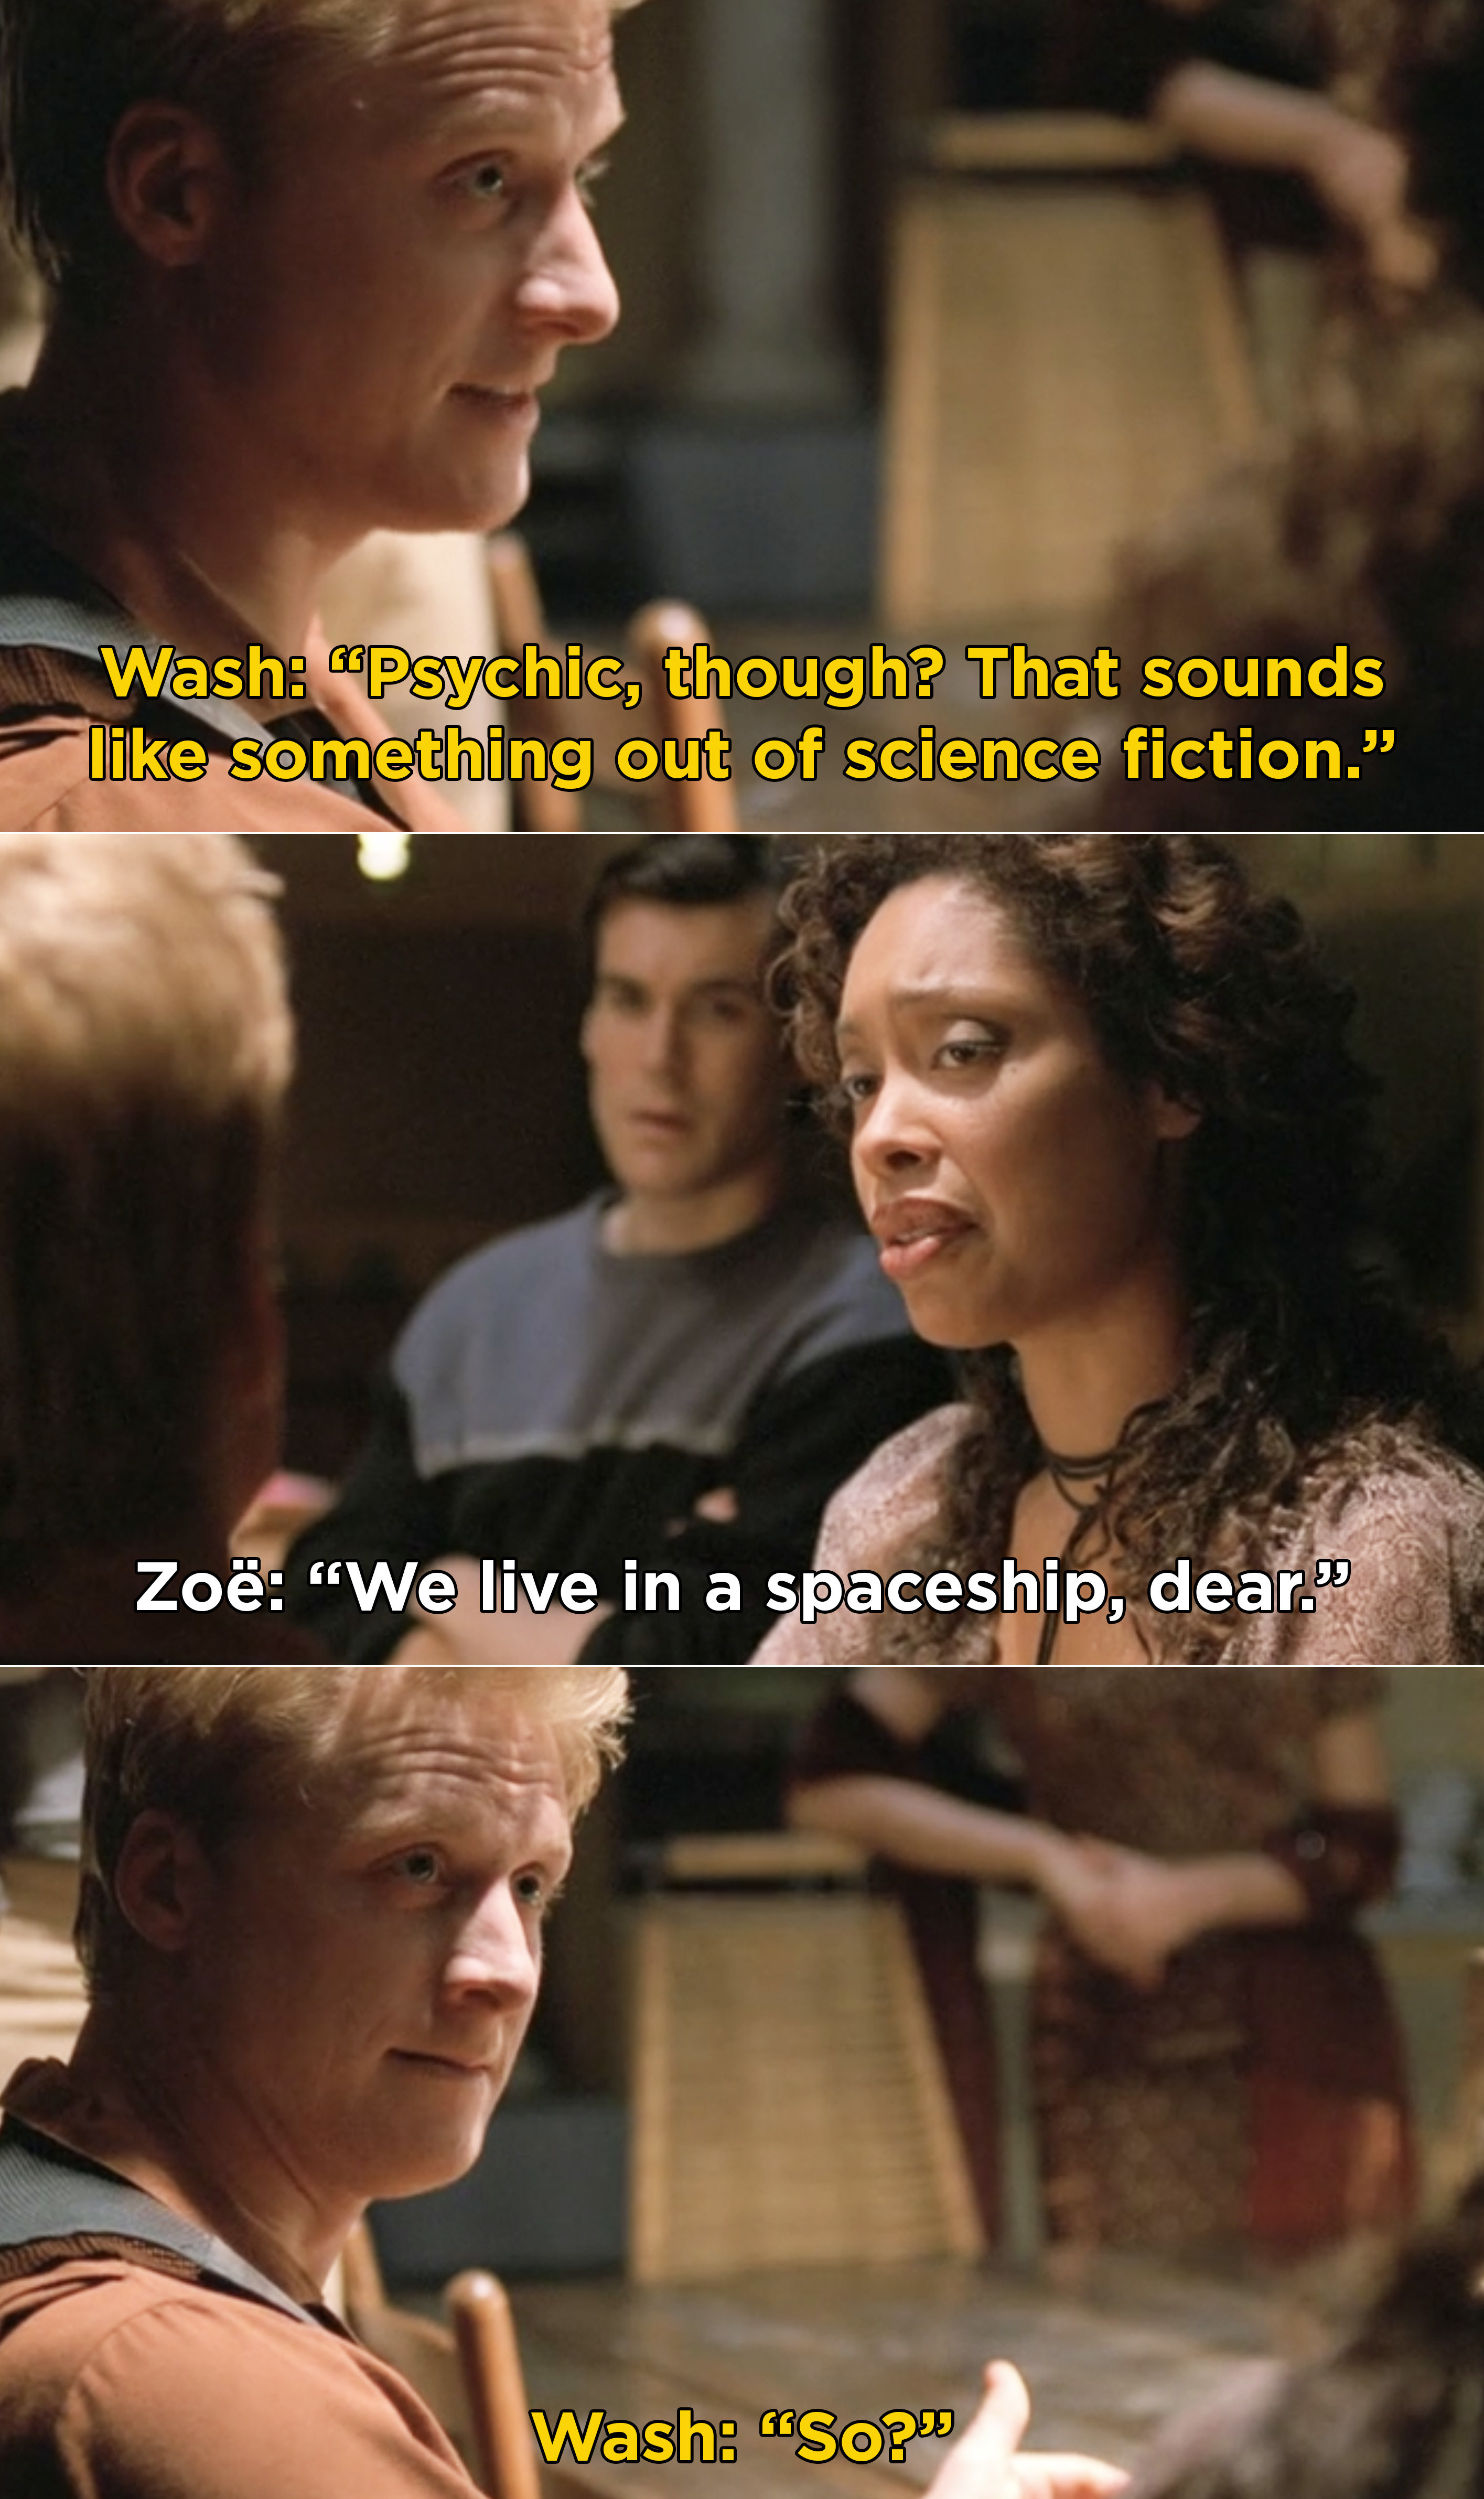 Wash saying a psychic sounds like science fiction and Zoe point out that they are in a spaceship